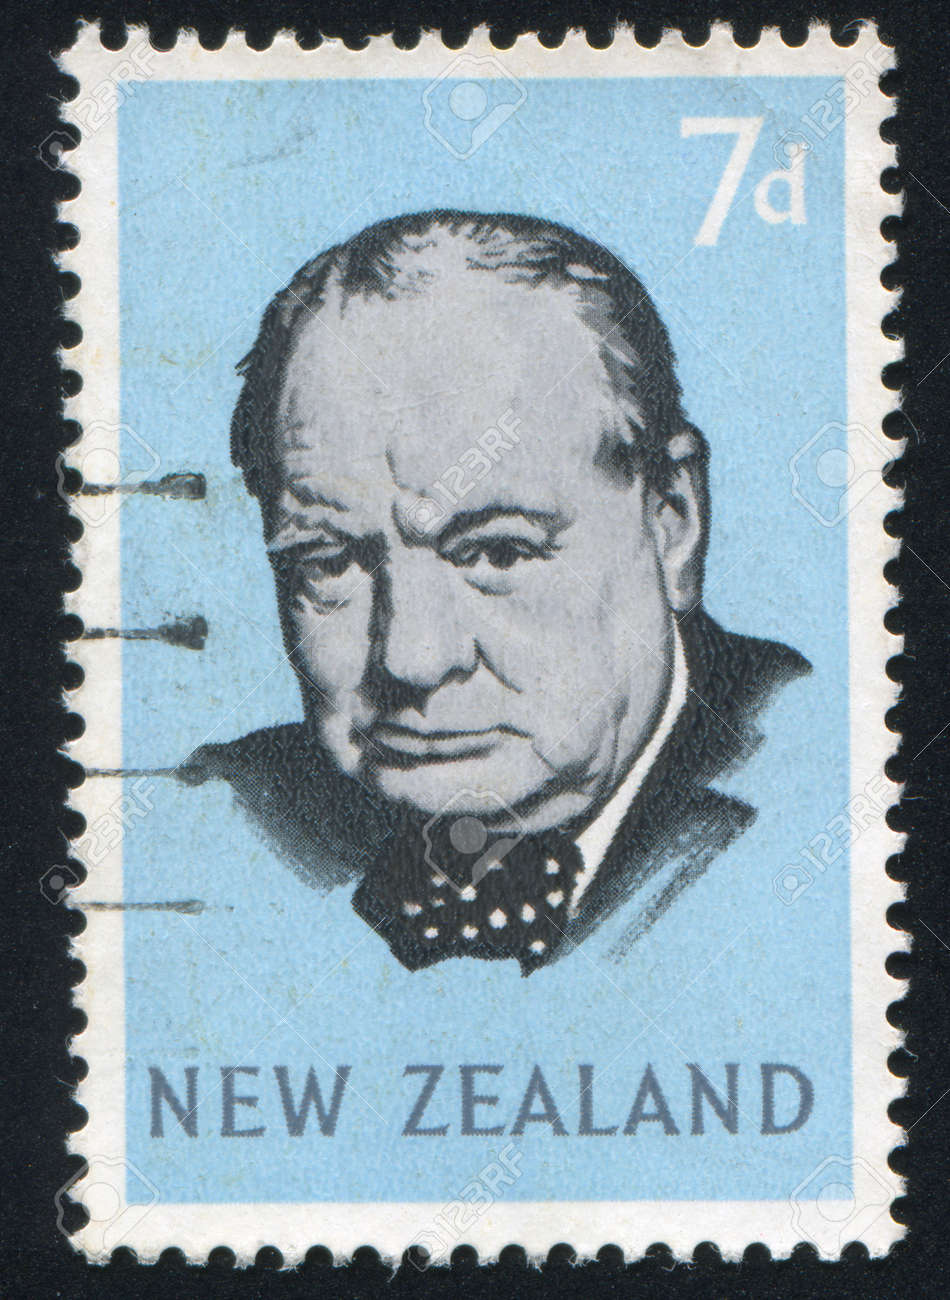 NEW ZEALAND - CIRCA 1965: stamp printed by New Zealand, shows Sir Winston Spencer Churchill, circa 1965 Stock Photo - 13460748